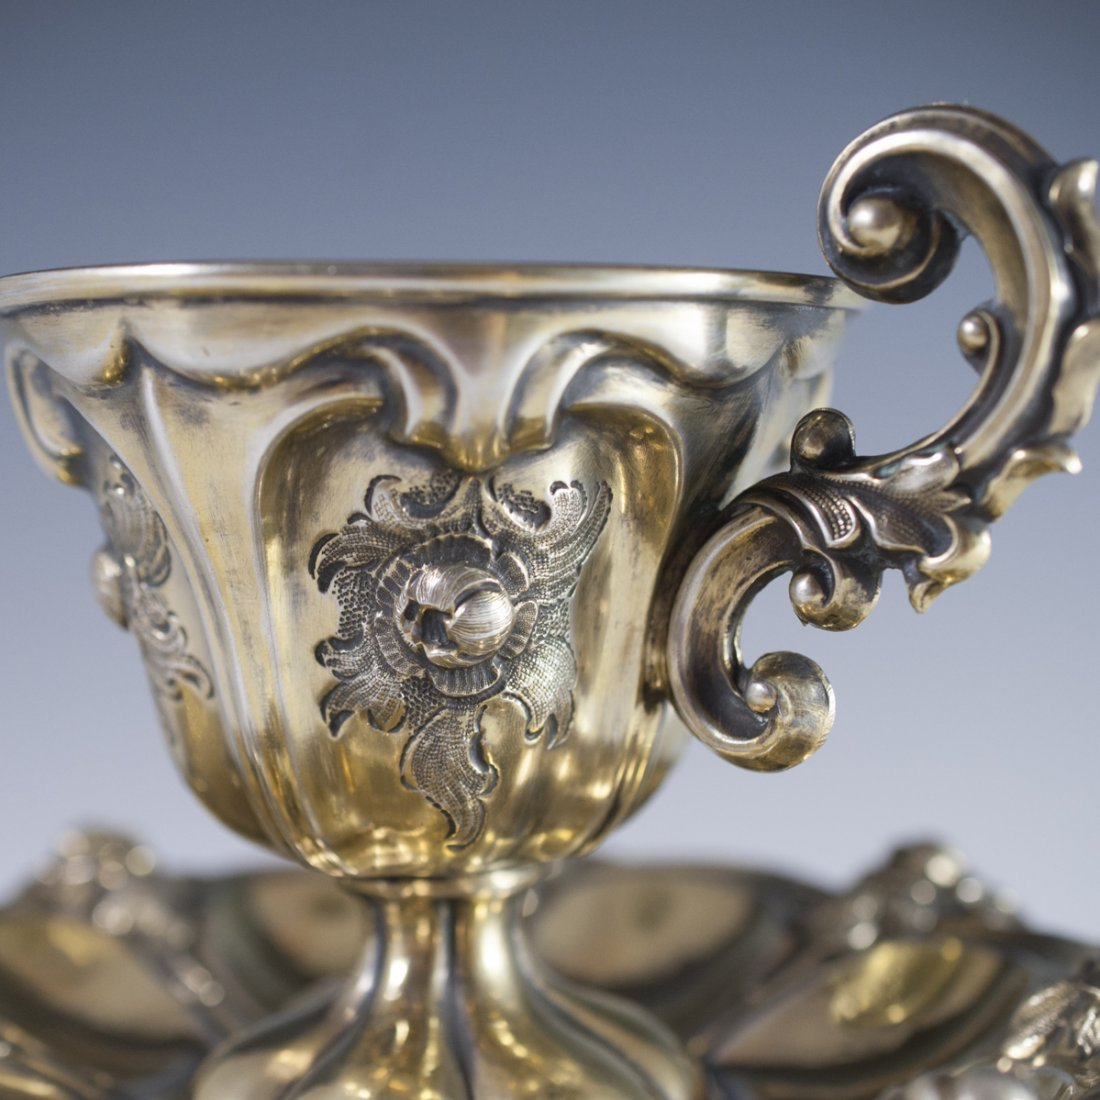 Possibly Tiffany & Co. Sterling Goblet & Saucer - 2